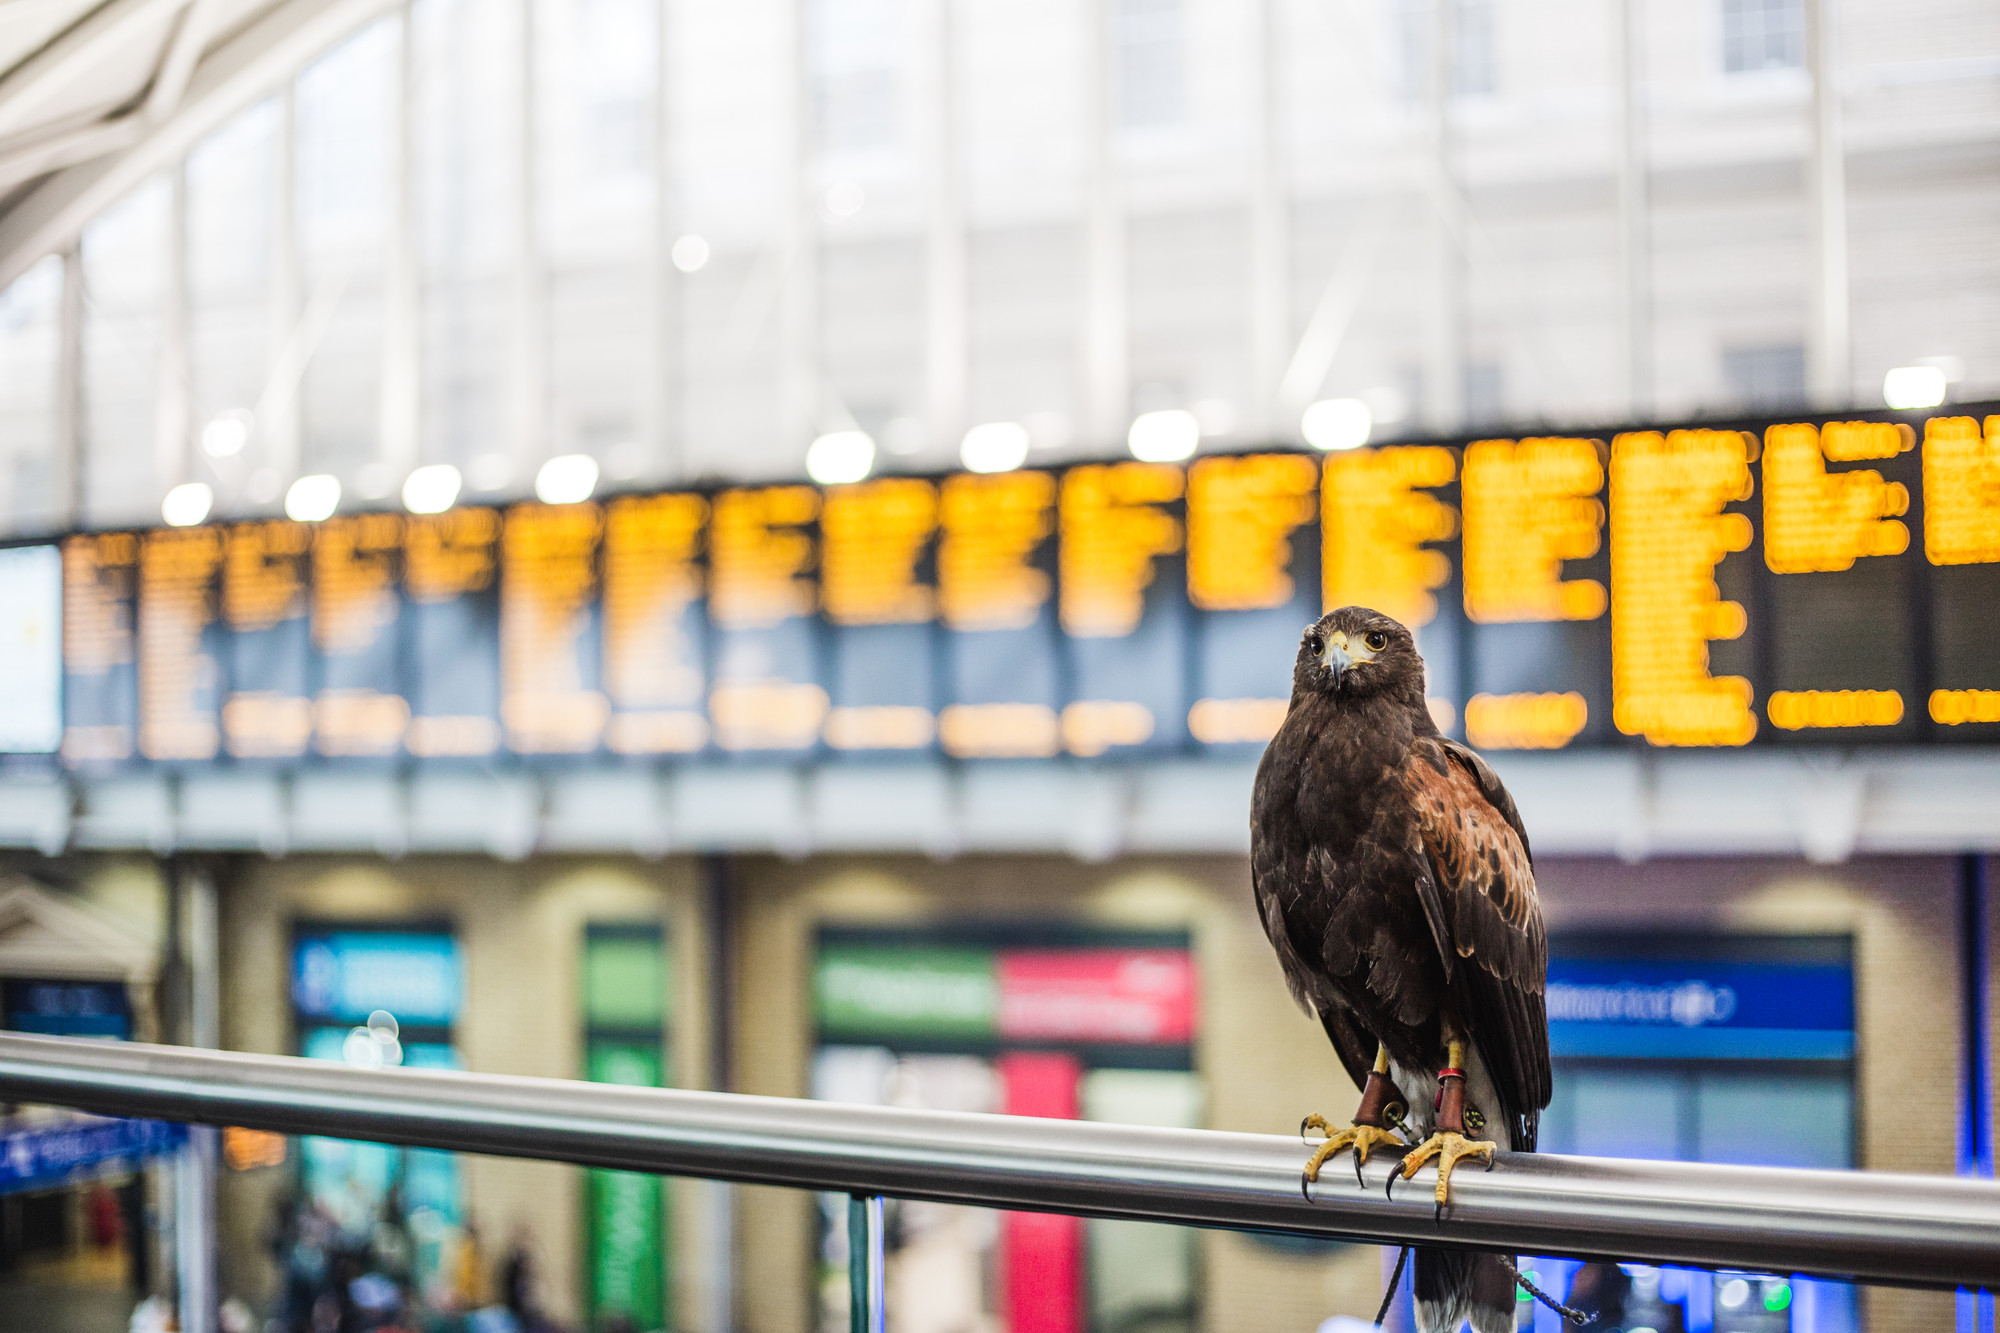 hawk-in-kings-cross-to-scare-pidgeons-away